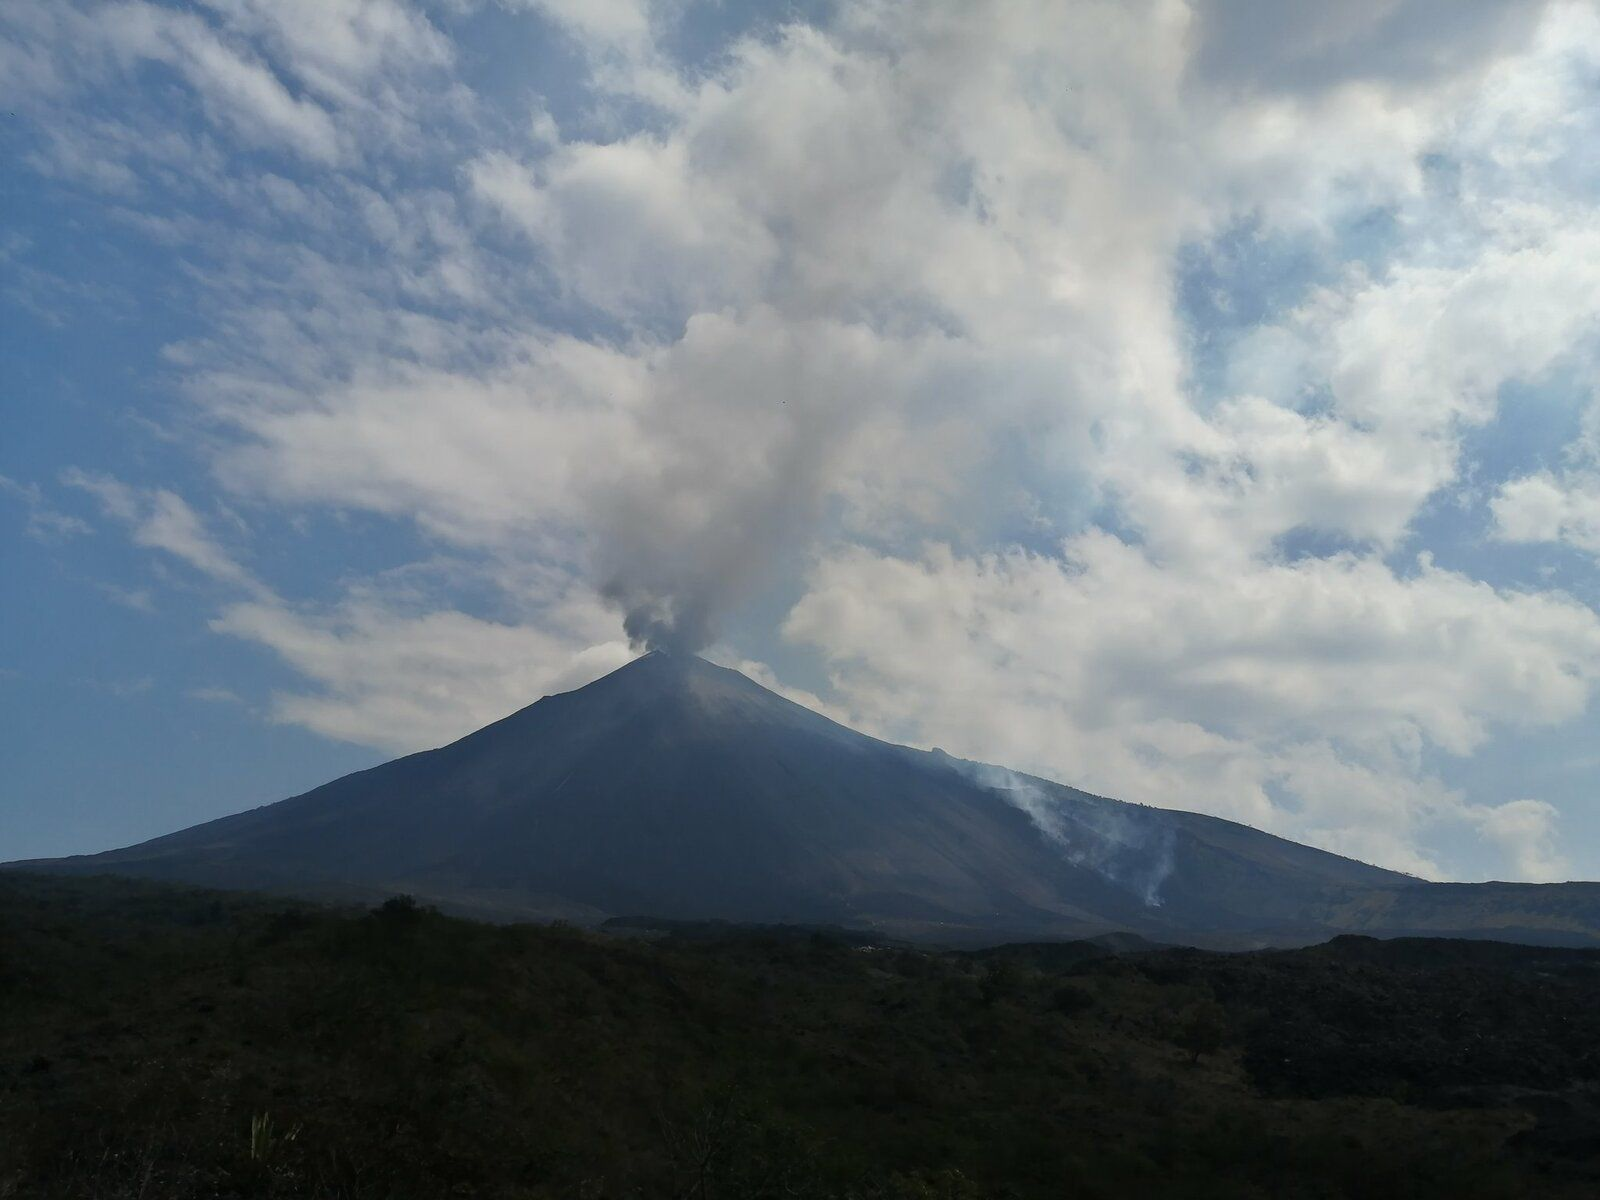 Pacaya - ash plume and fumaroles on the flows on 03.18.2021 - photo William Chigna